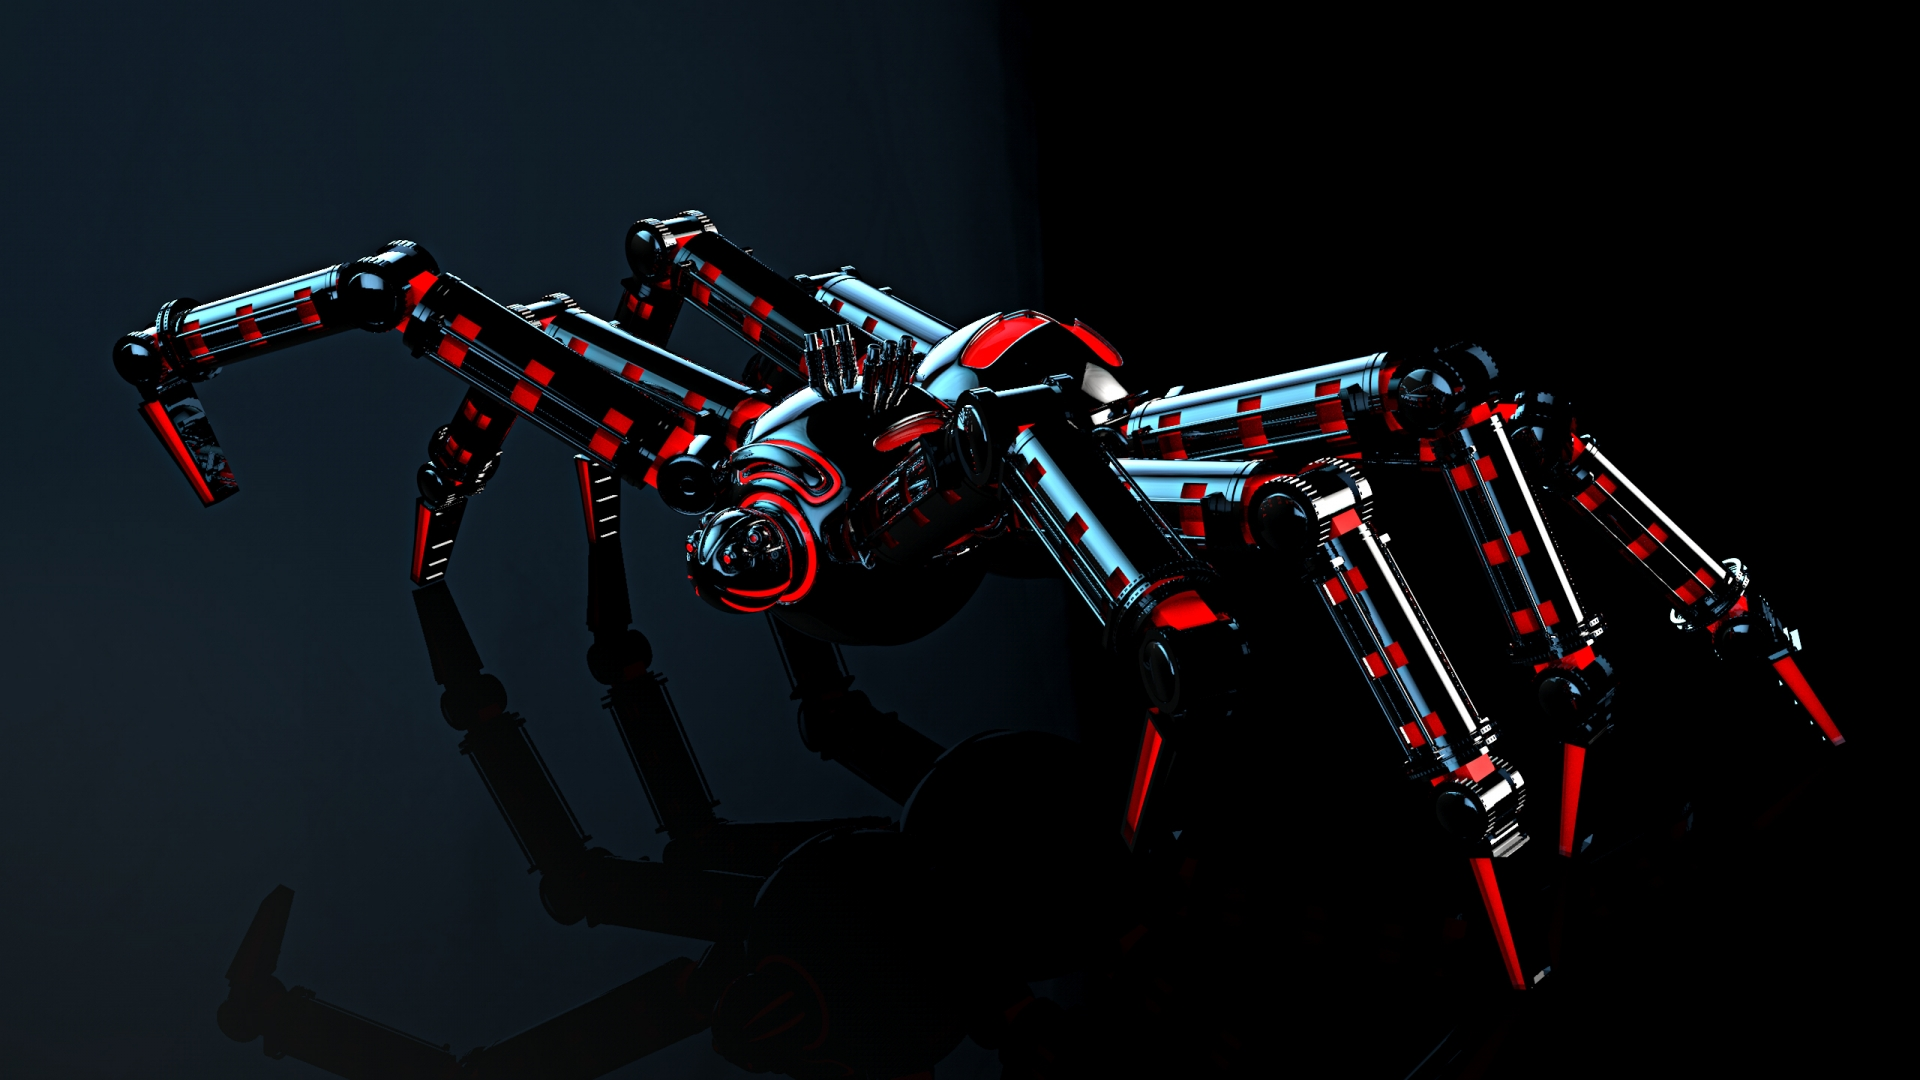 Spider Photos & wallpapers